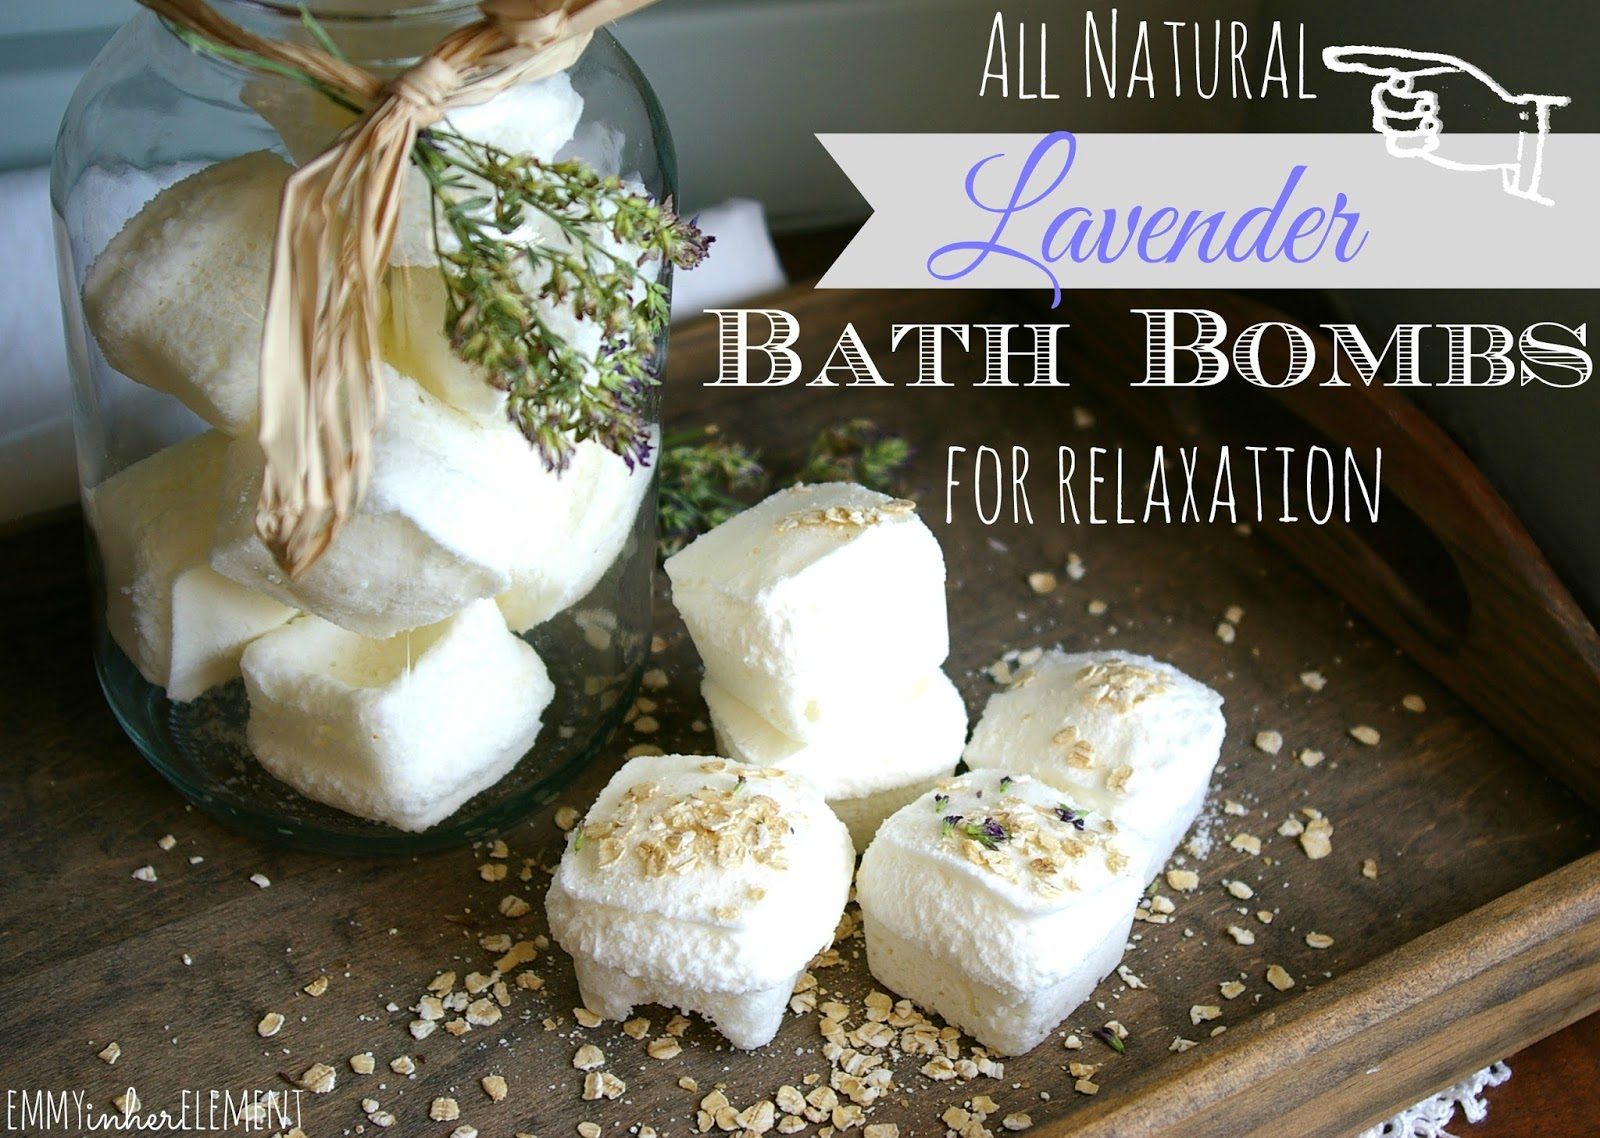 Emmy in her element homemade all natural lavender bath fizzies relaxation diy bath bombs solutioingenieria Gallery